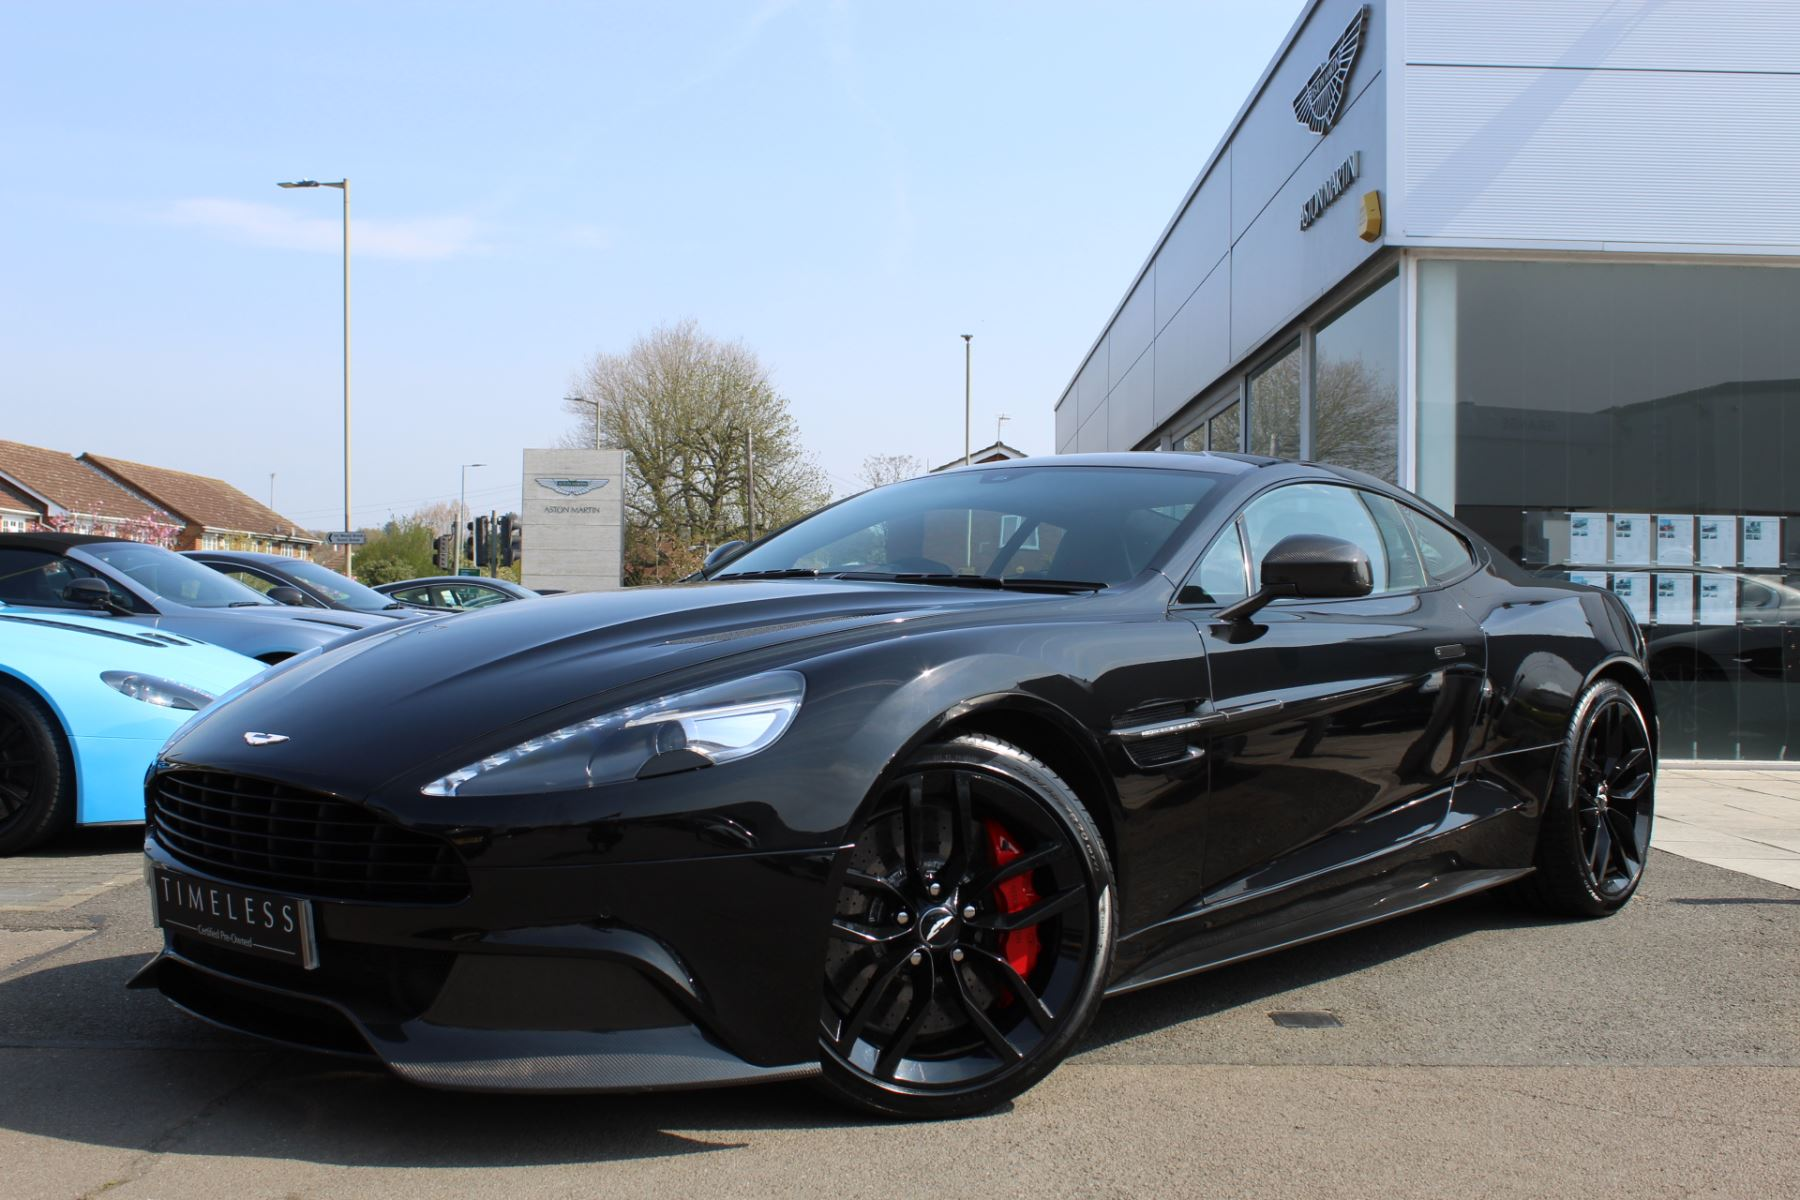 Aston Martin Vanquish V12 [568] 2+2 2dr Touchtronic 5.9 Automatic 3 door Coupe (2015)